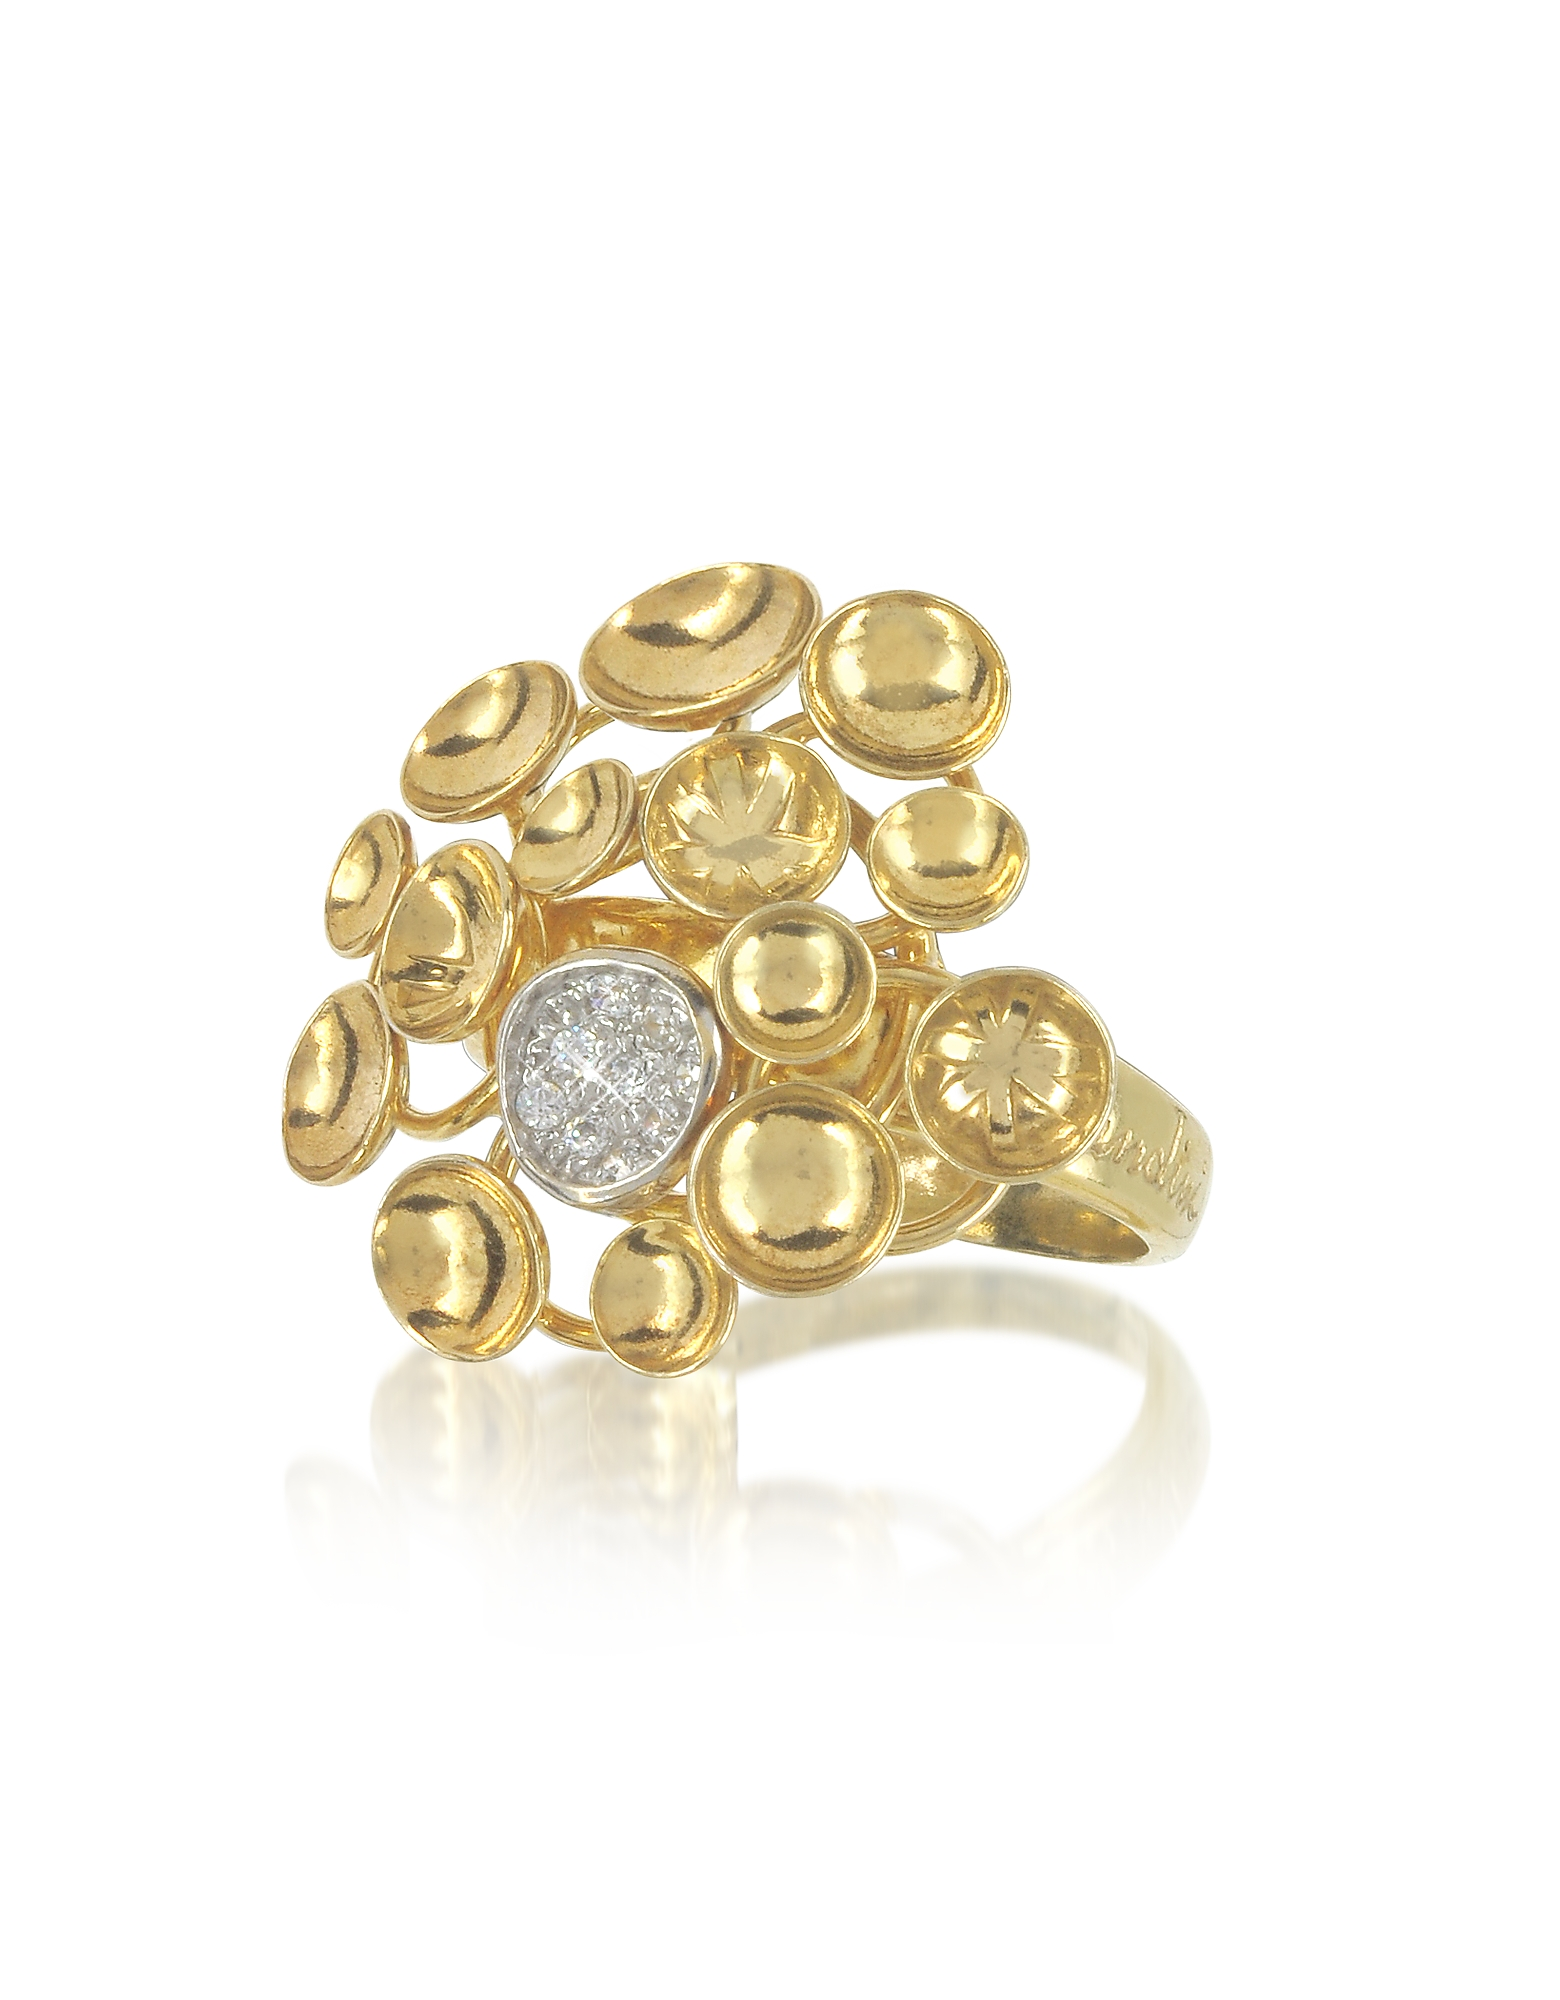 Orlando Orlandini Rings, 18K Yellow Gold Bouquet Ring w/Diamond